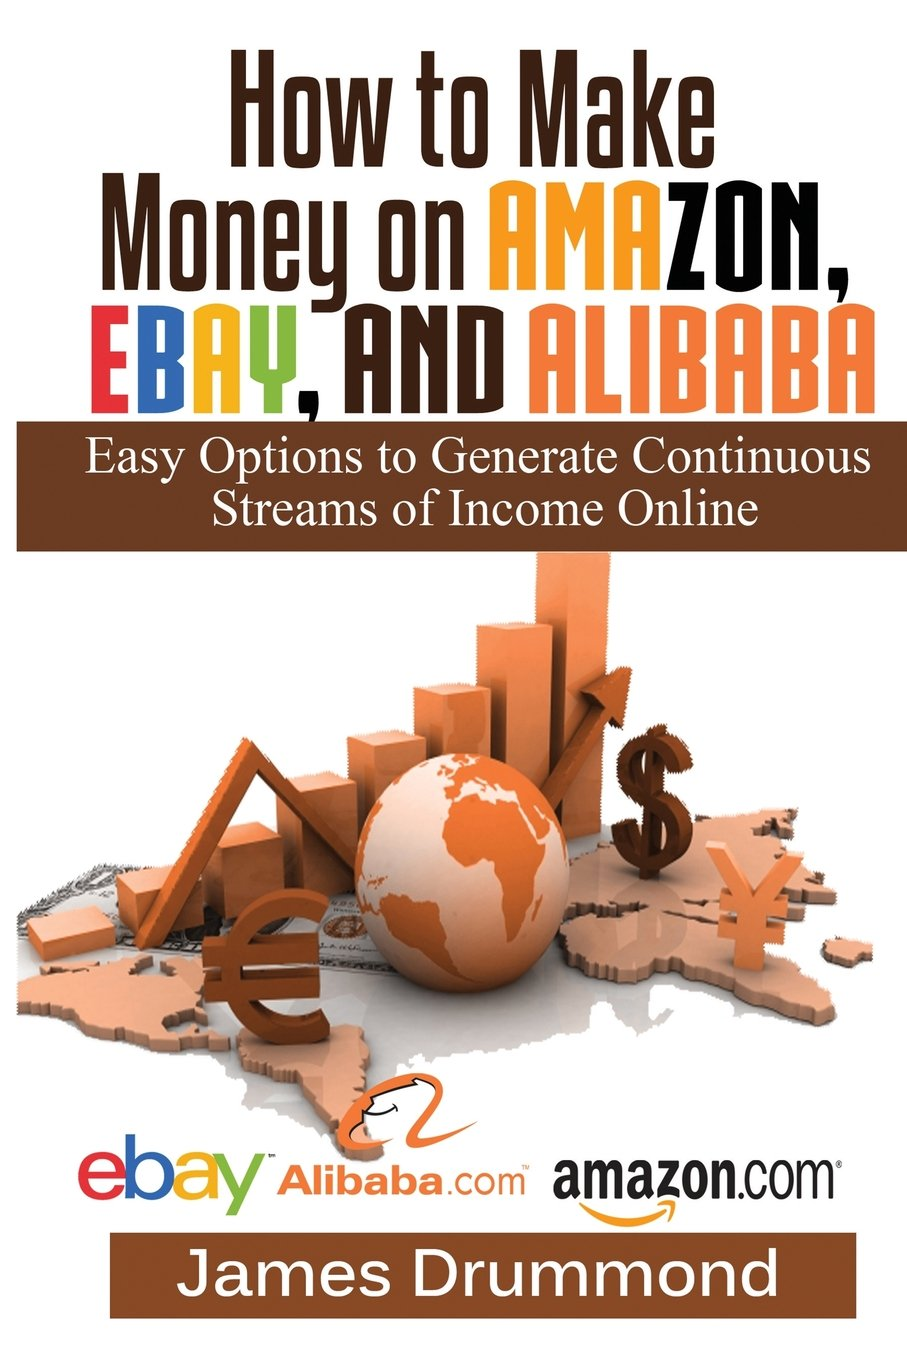 How to Make Money on Amazon, EBay and Alibaba: Easy Options to Generate Continuous Streams of Income Online (Beginners Guide To Selling Online, Making Money ...